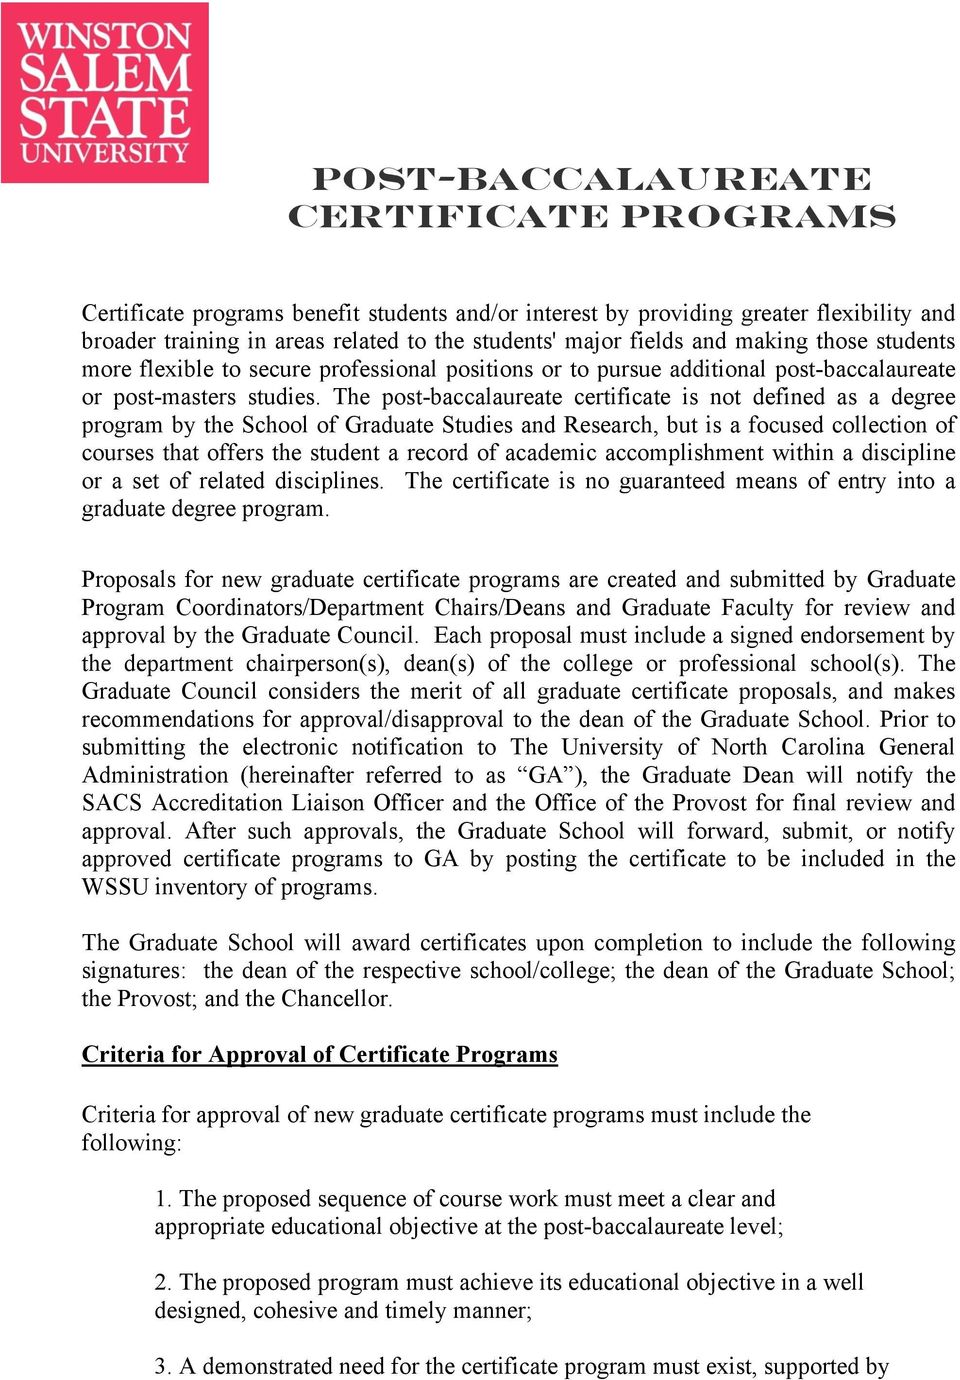 The pst-baccalaureate certificate is nt defined as a degree prgram by the Schl f Graduate Studies and Research, but is a fcused cllectin f curses that ffers the student a recrd f academic